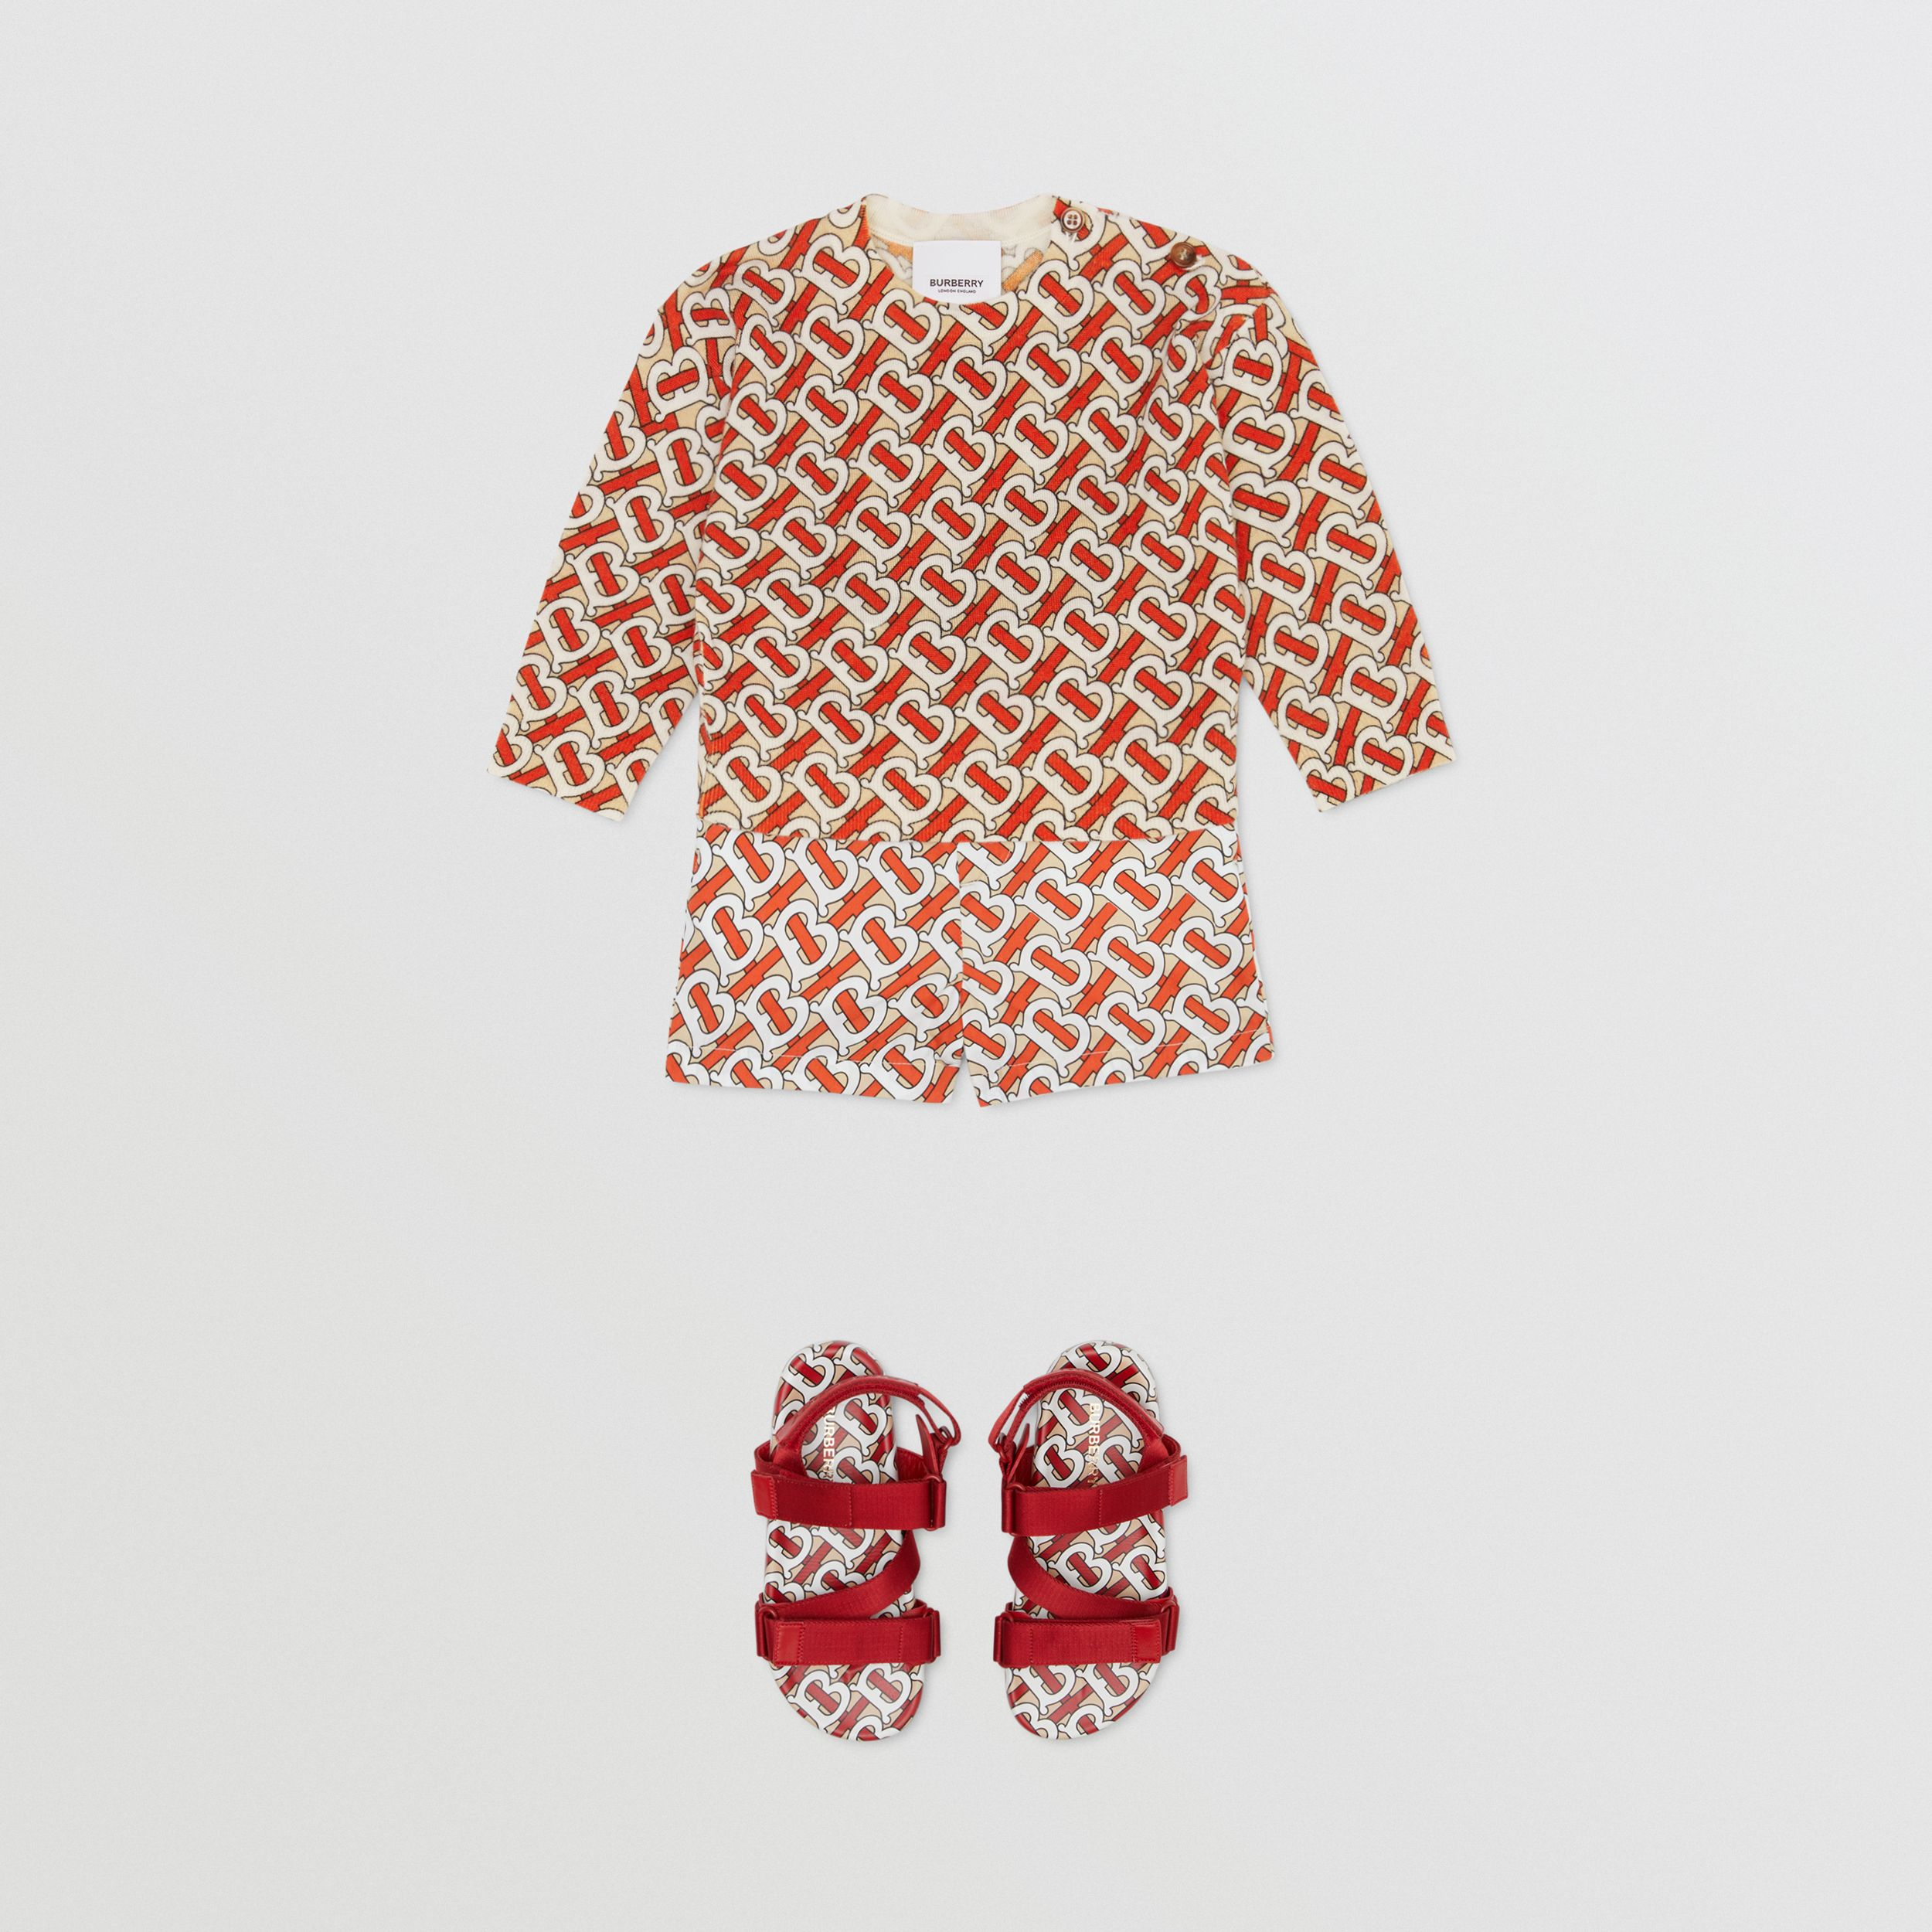 Monogram Print Merino Wool Sweater in Vermilion Red - Children | Burberry - 3